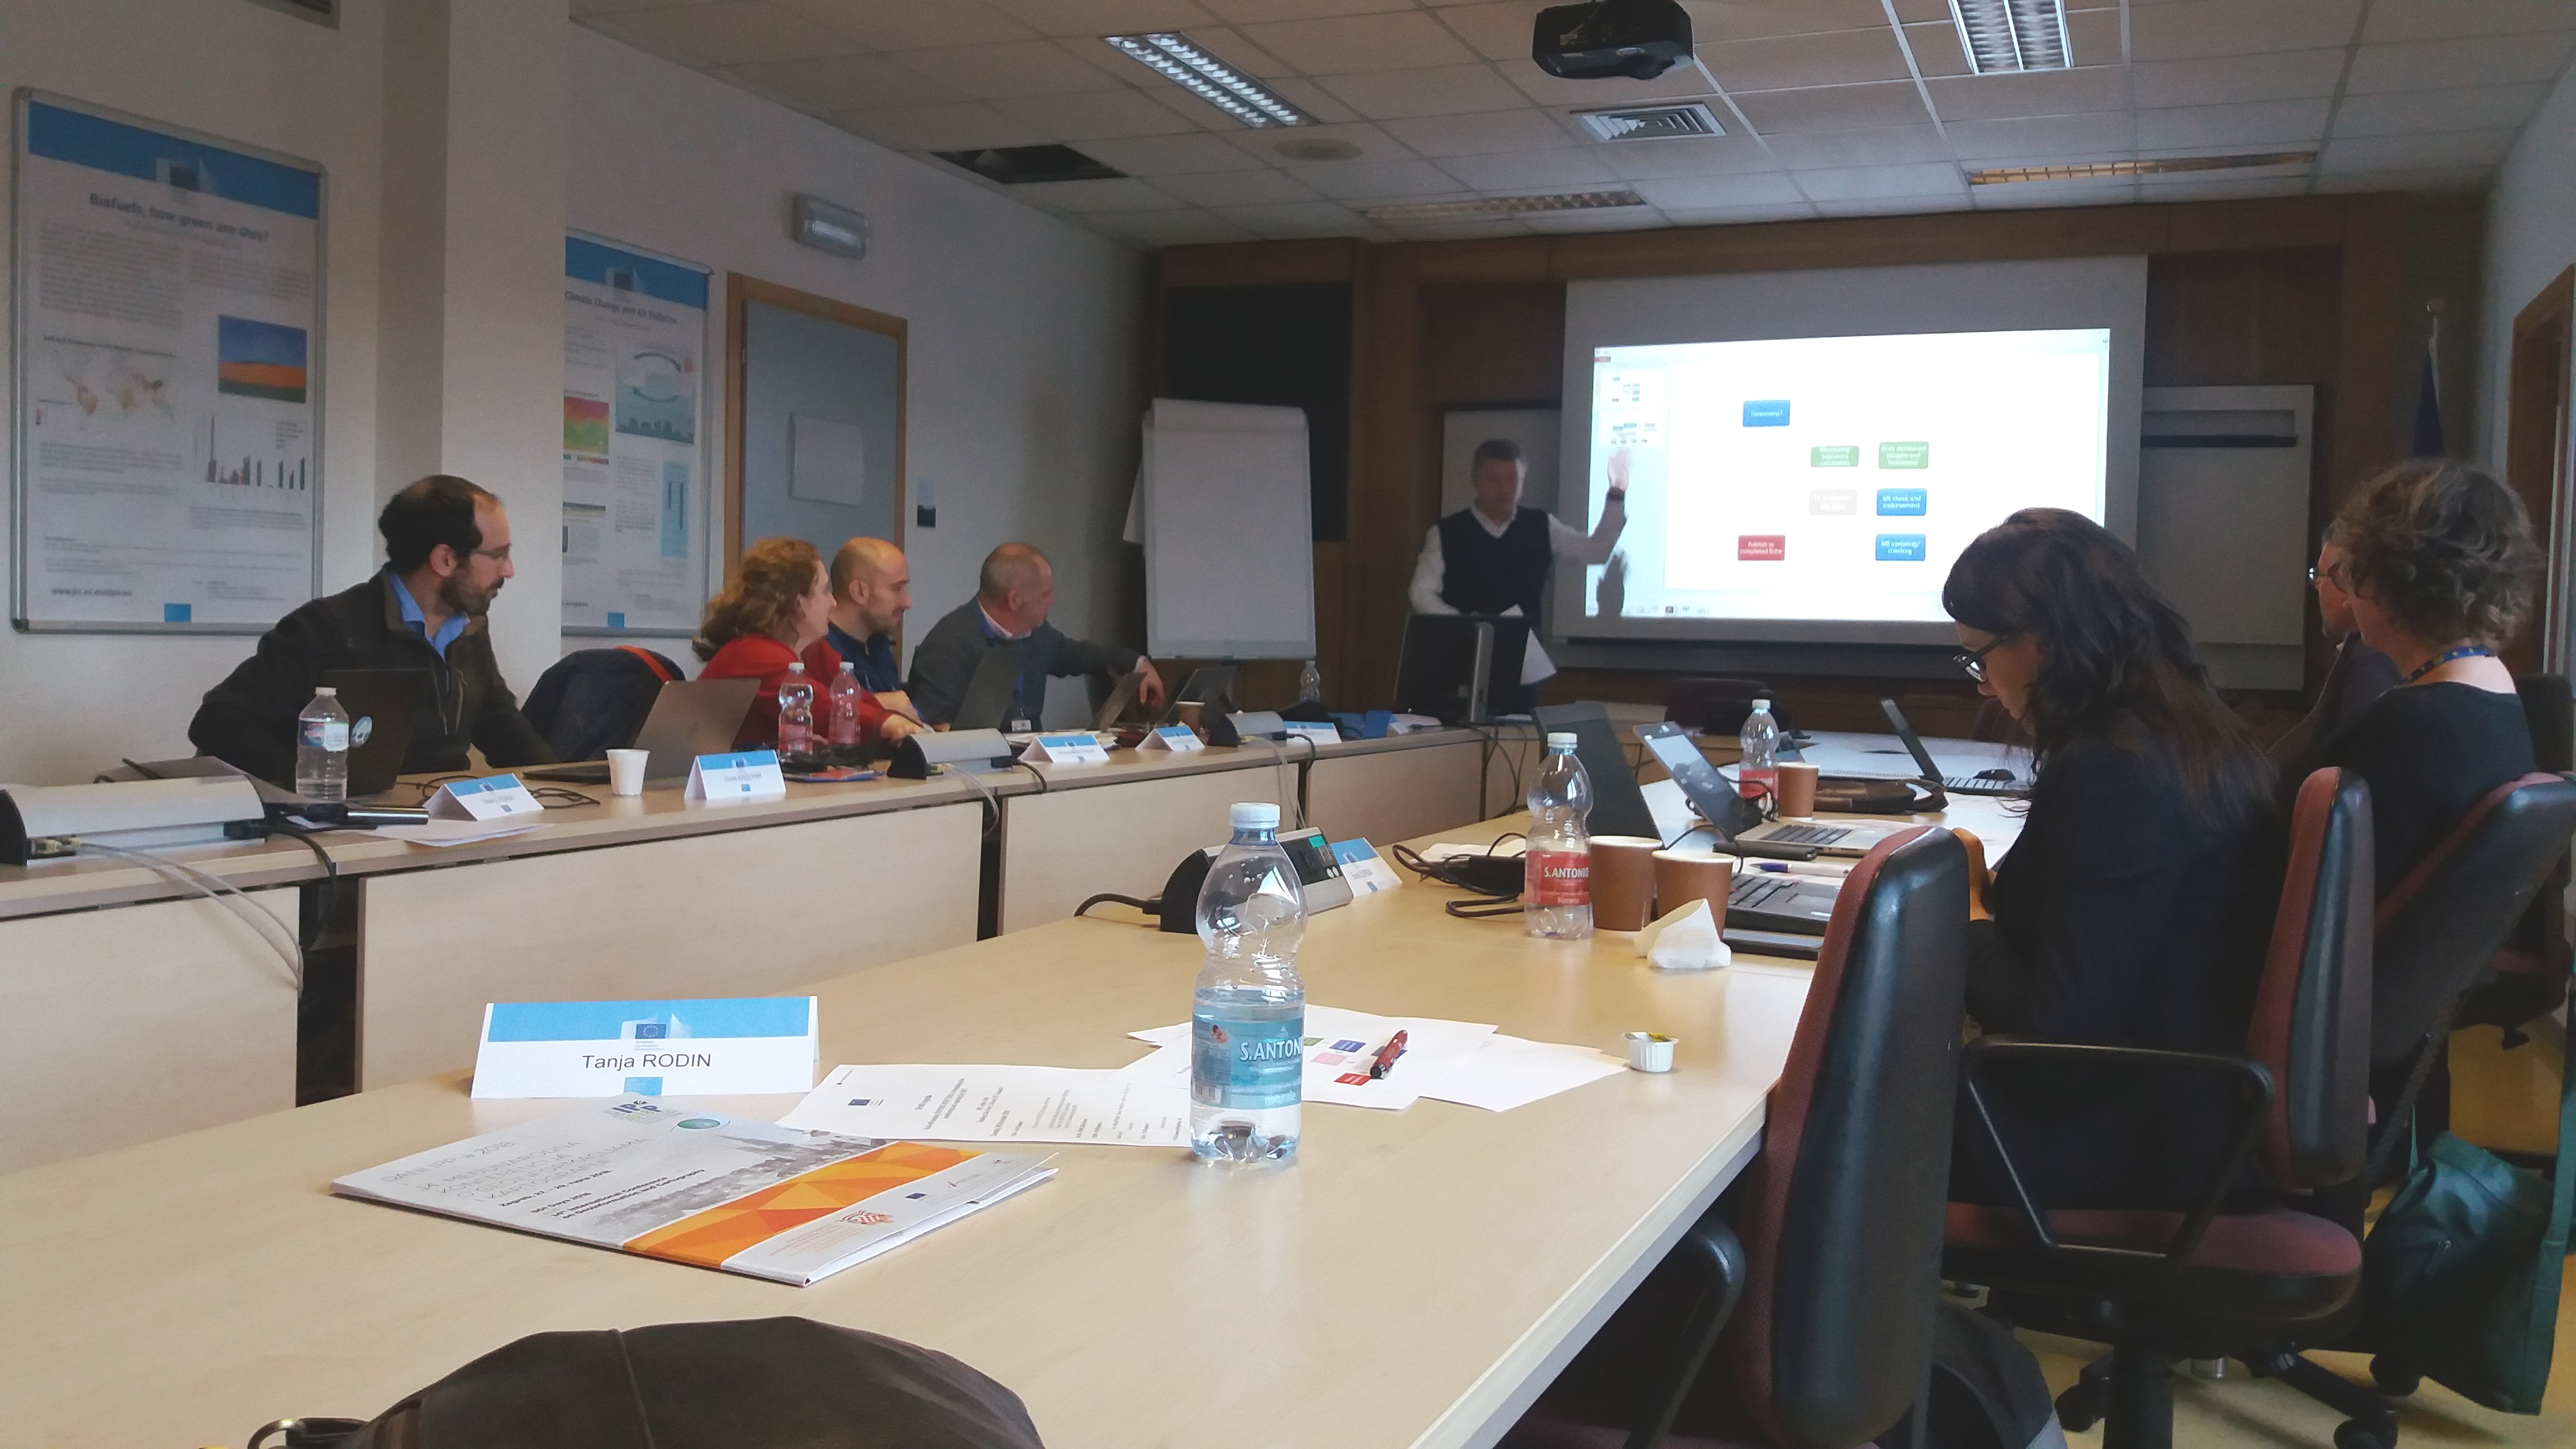 The picture shows the members of the INSPIRE Working Group on Monitoring and Reporting at a working meeting at the Joint Research Center in Ispra, Italy.